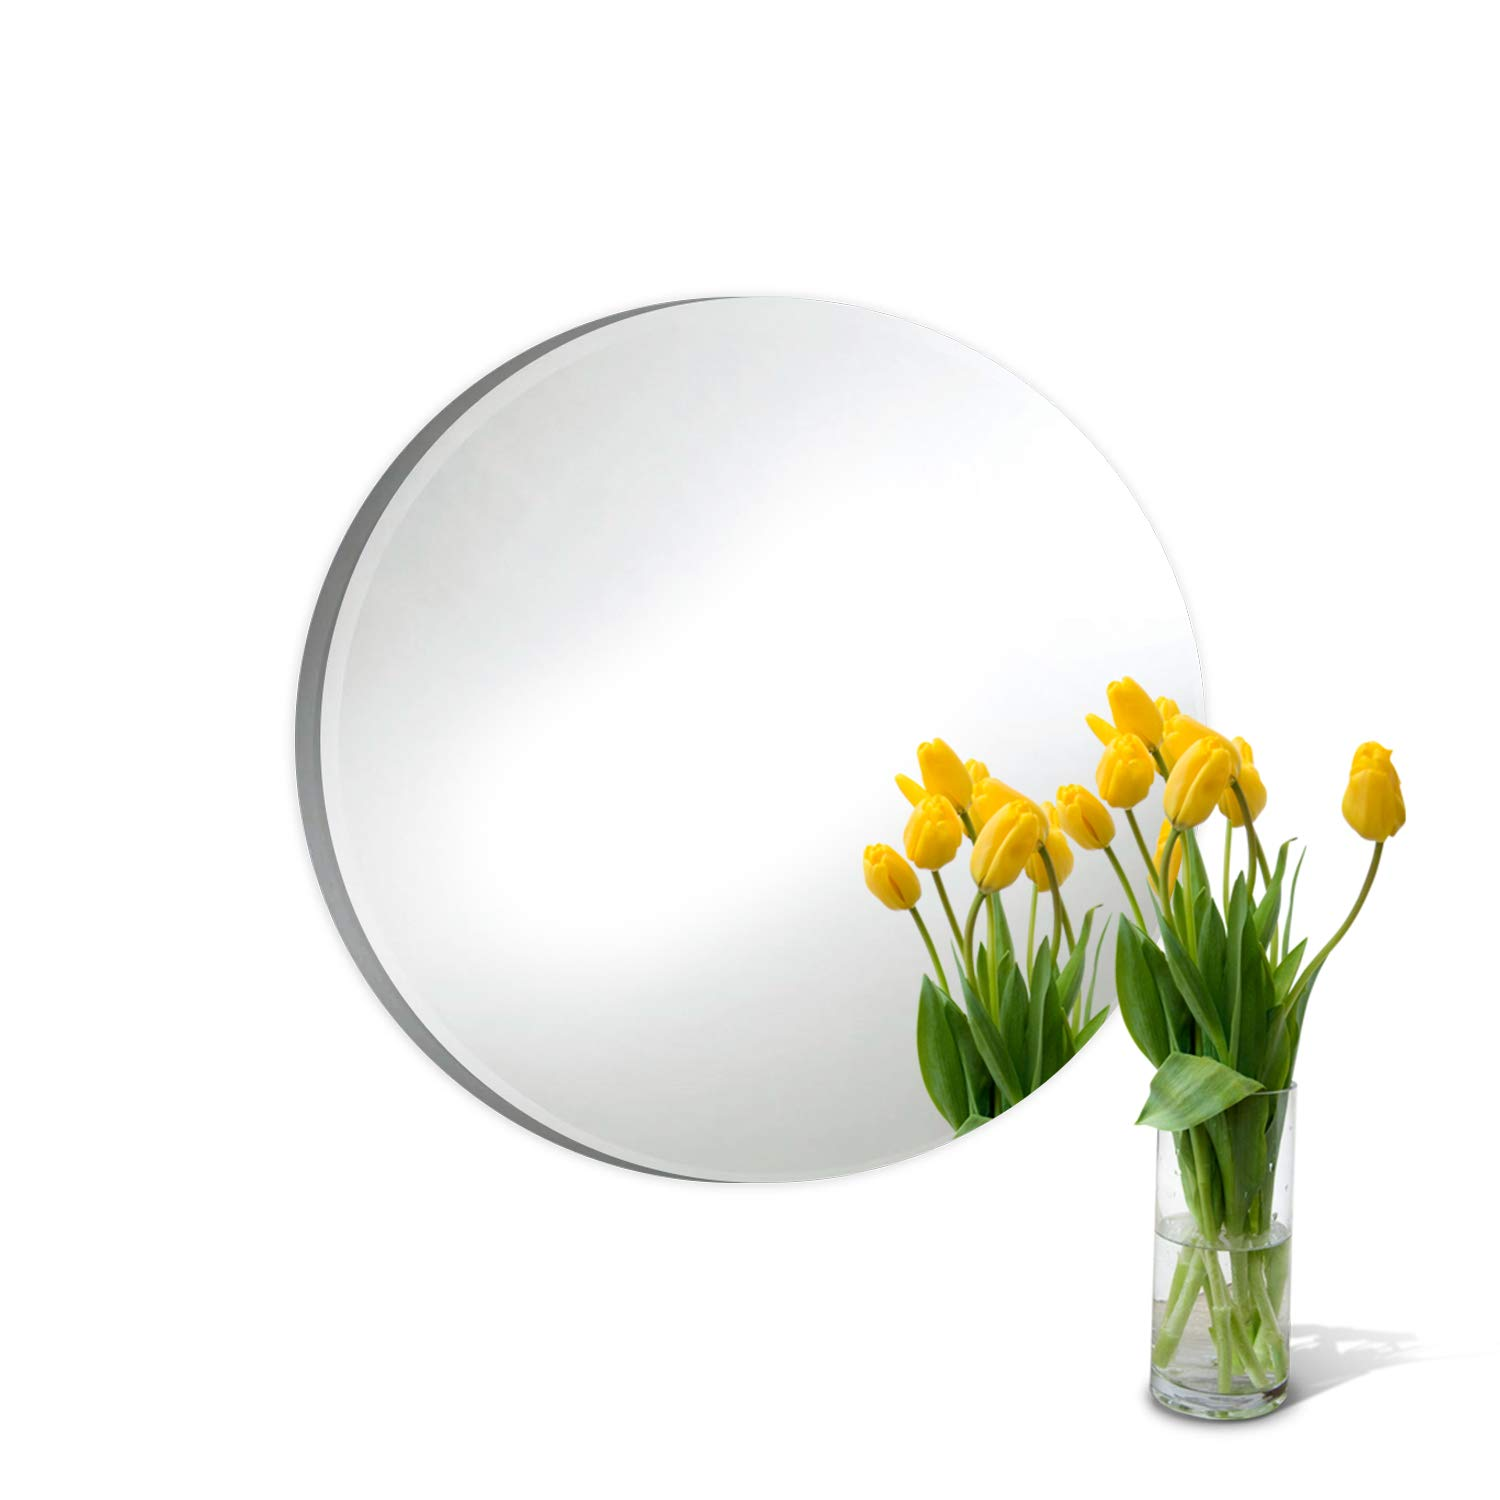 Round Mirror Centerpiece for Wedding Decorations and Dining Table Centerpieces (14 Inch, Pack of 10)                by Better crafts (Image #2)